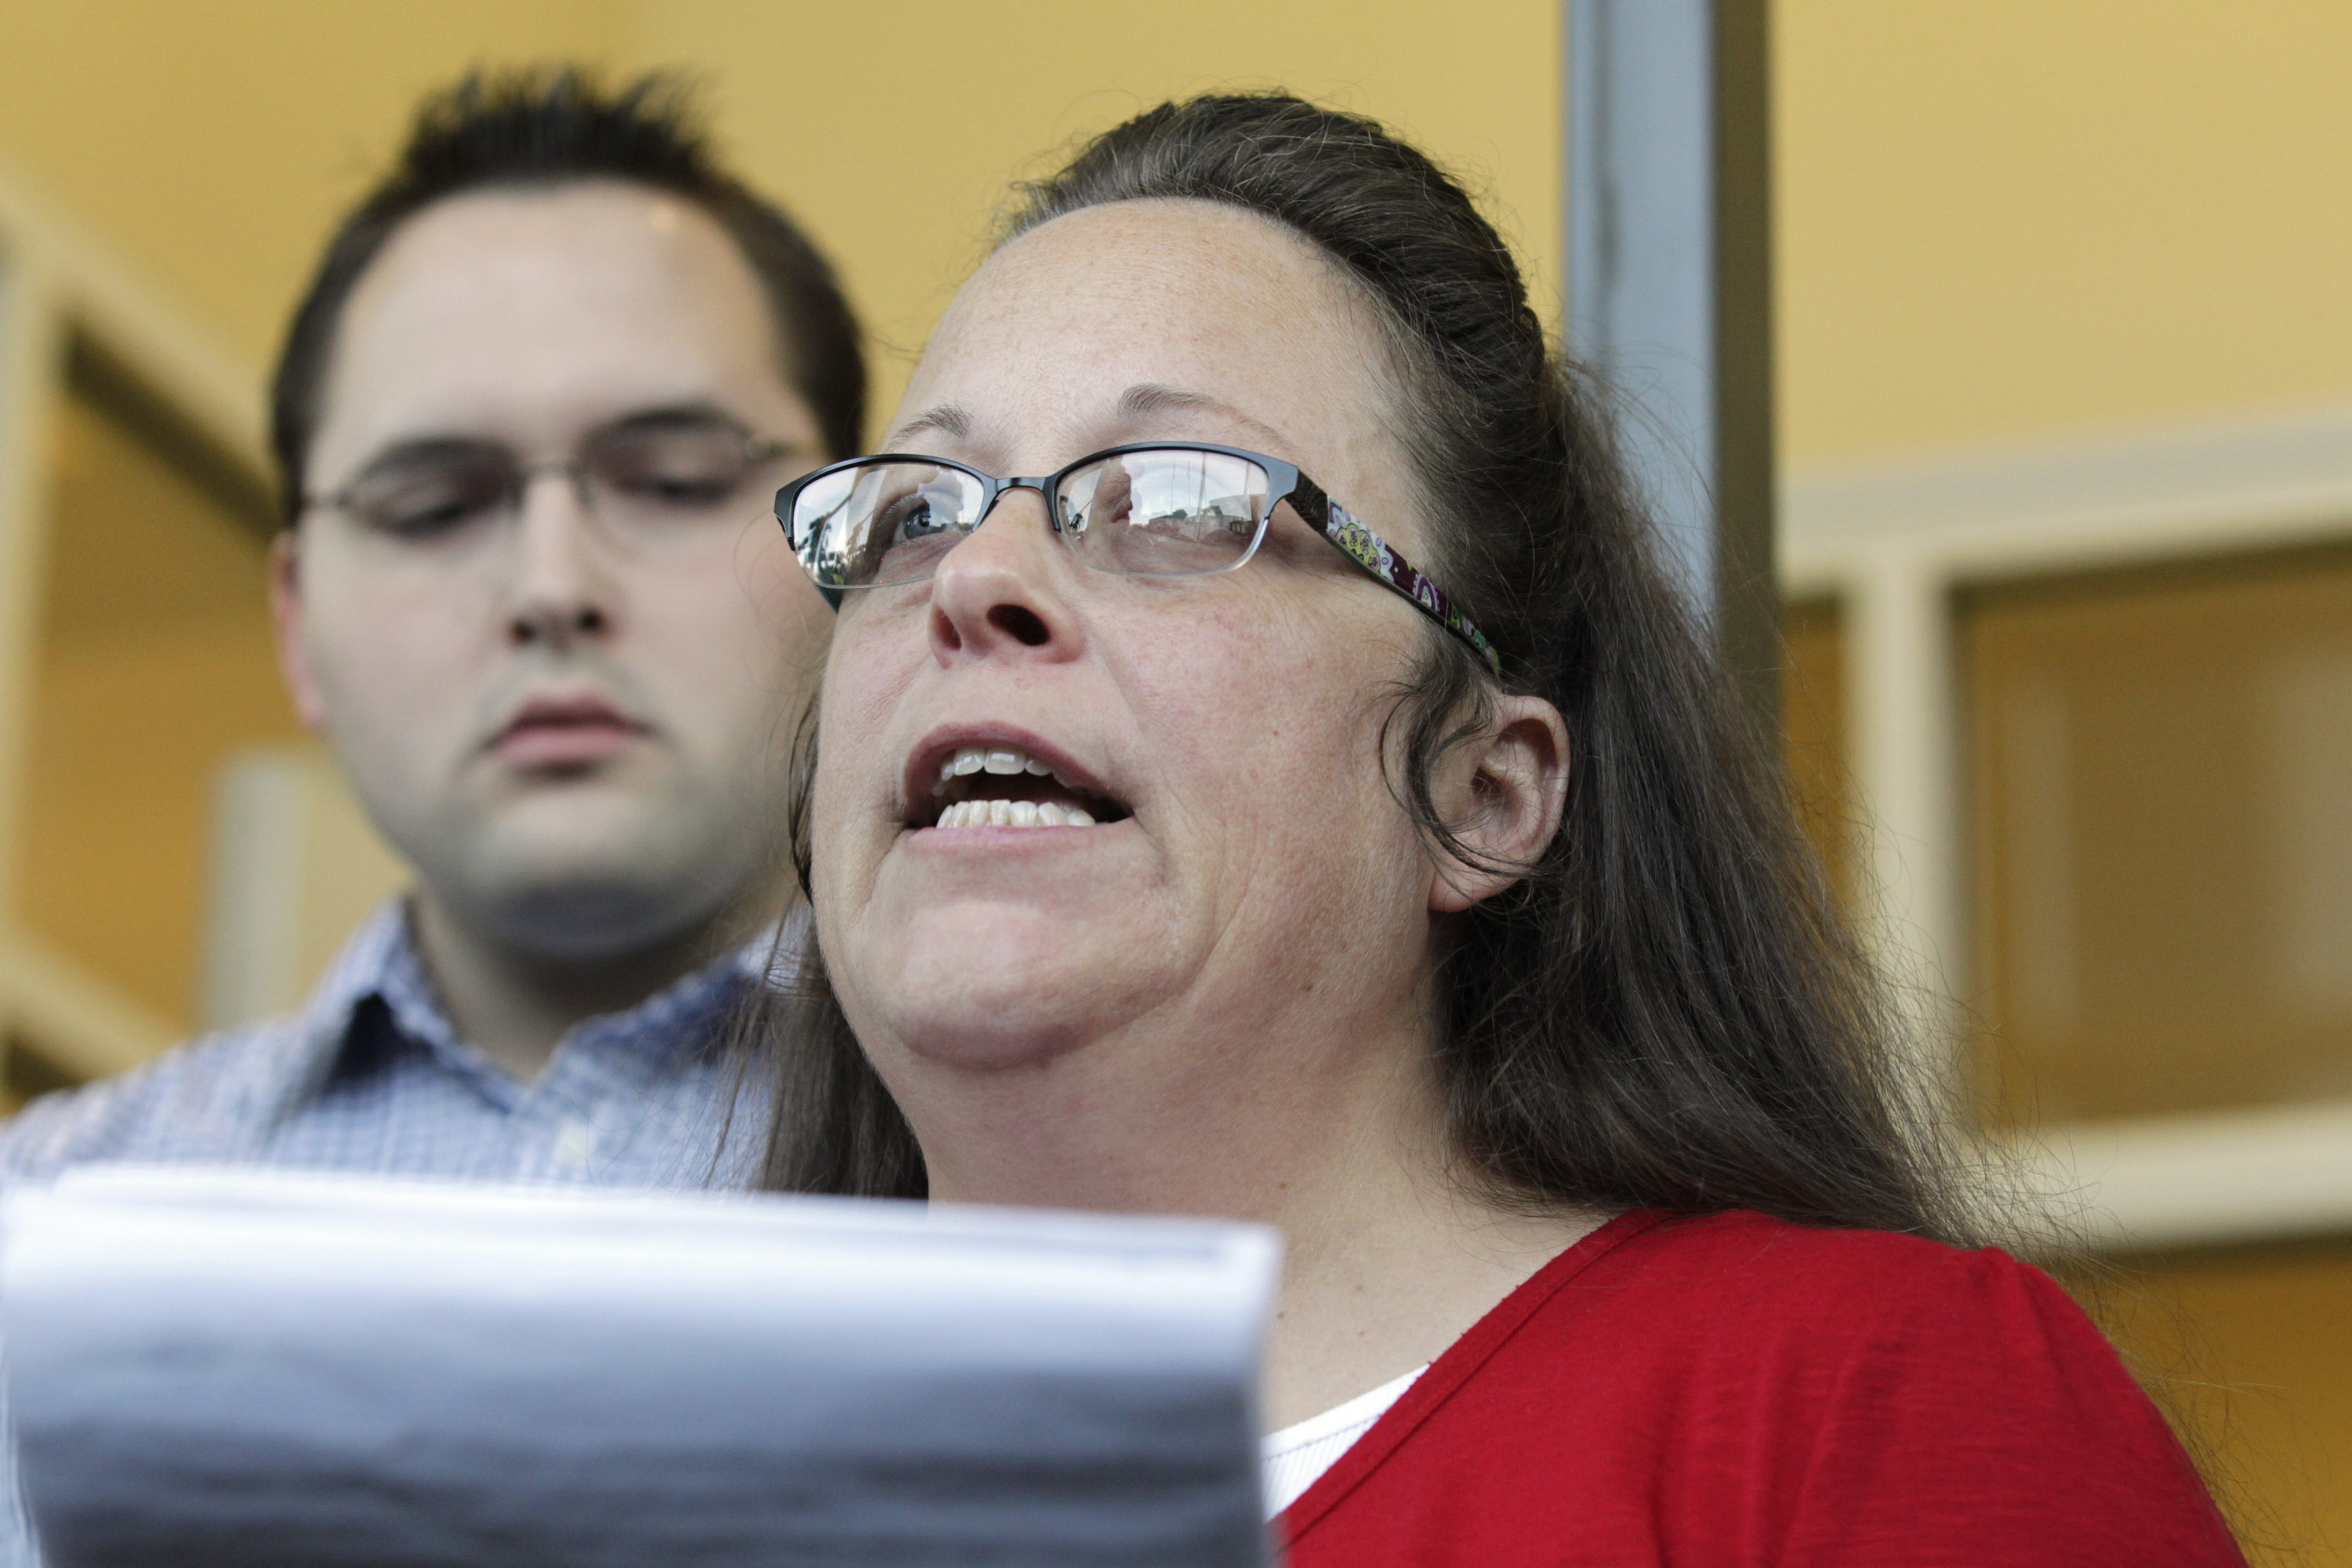 Rowan County Clerk Kim Davis, with son Nathan Davis, a deputy clerk, reads a statement to the press outside the Rowan County Courthouse on Sept. 14, 2015 in Morehead, Ky. (Pablo Alcala/Lexington Herald--Leader/TNSGetty Images)